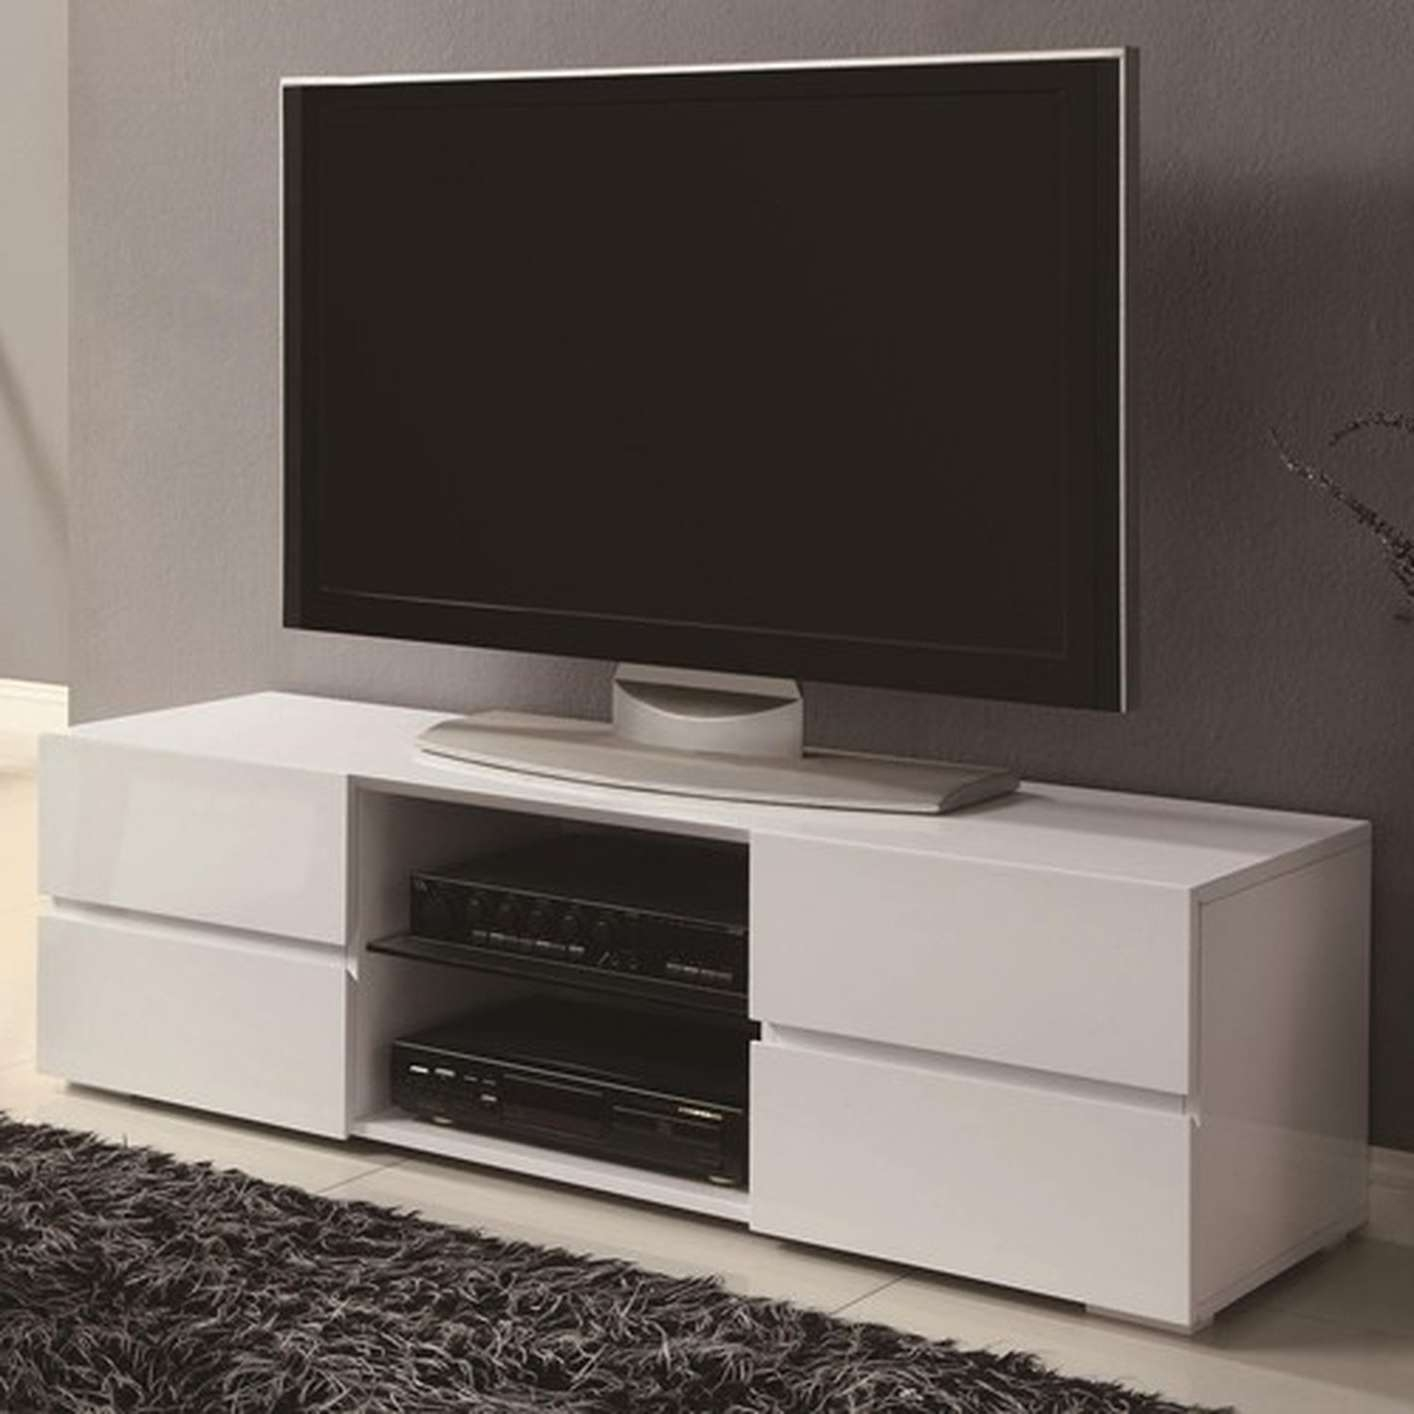 White Tv Stand 60white Tv Stands Furniture Tags : 49 Astounding Pertaining To Cheap White Tv Stands (View 10 of 20)